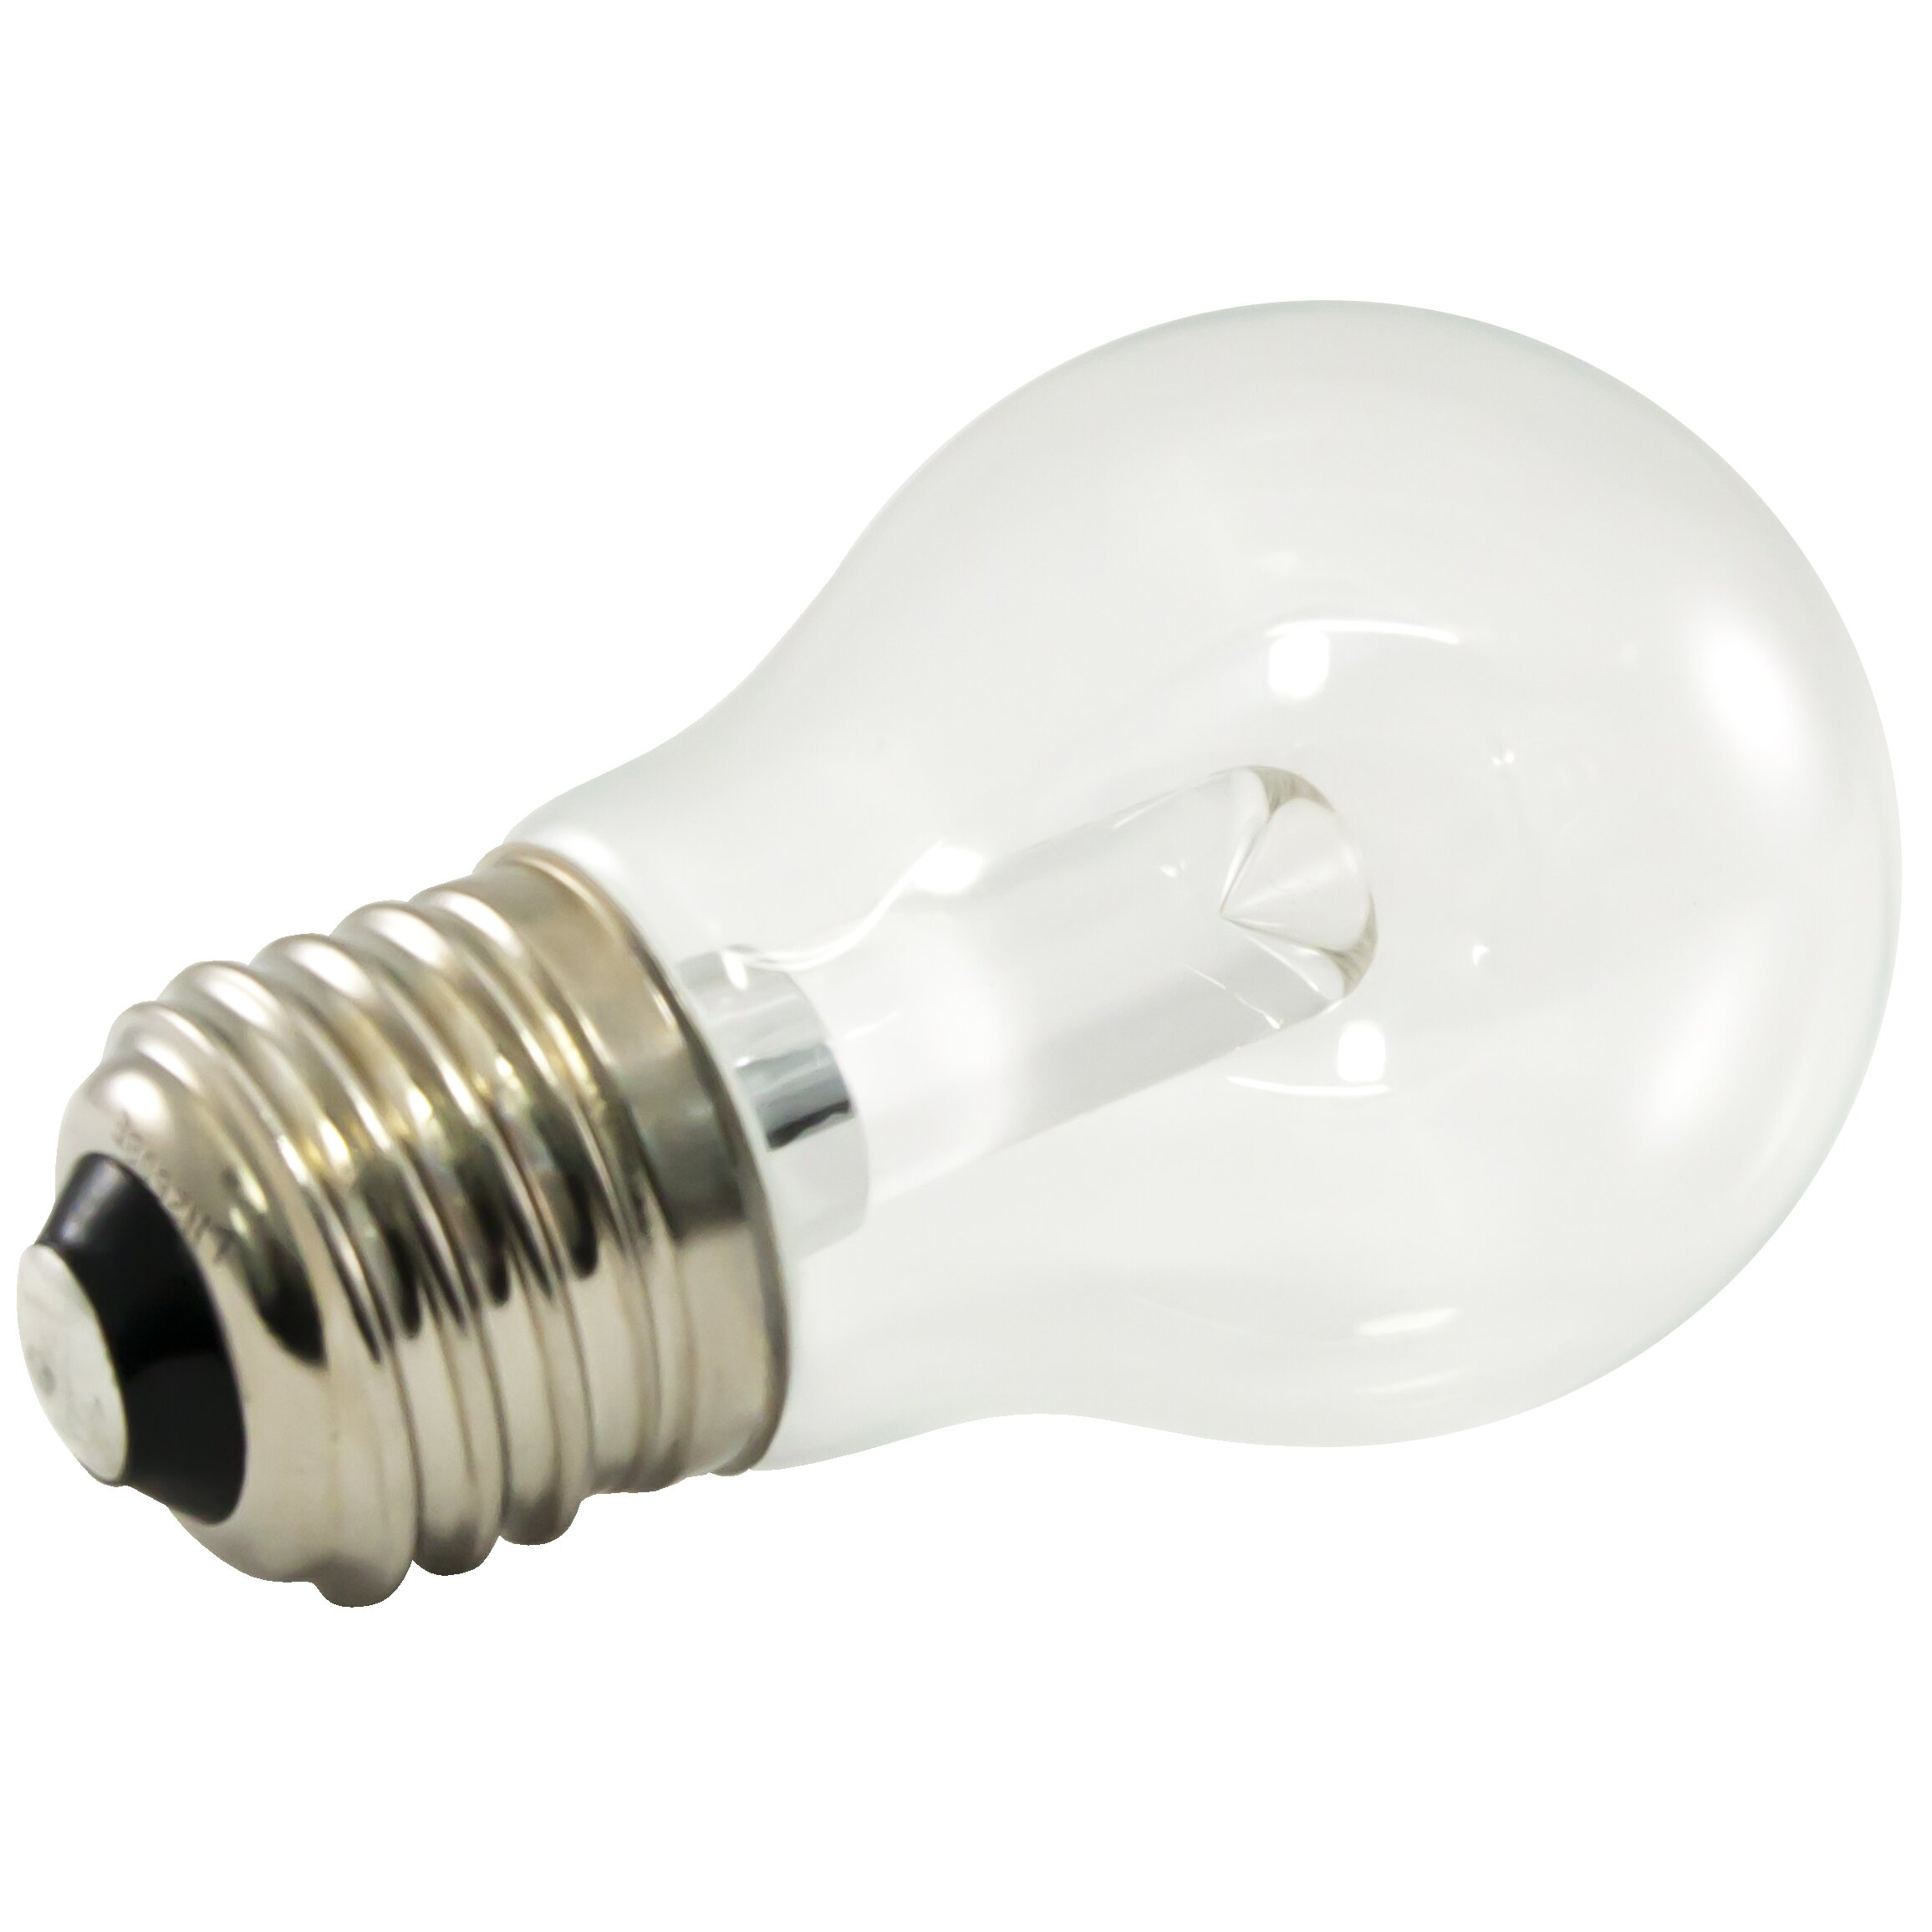 120 Volt Outdoor Led Light: 1.4W 120-Volt (5500K) LED Light Bulb